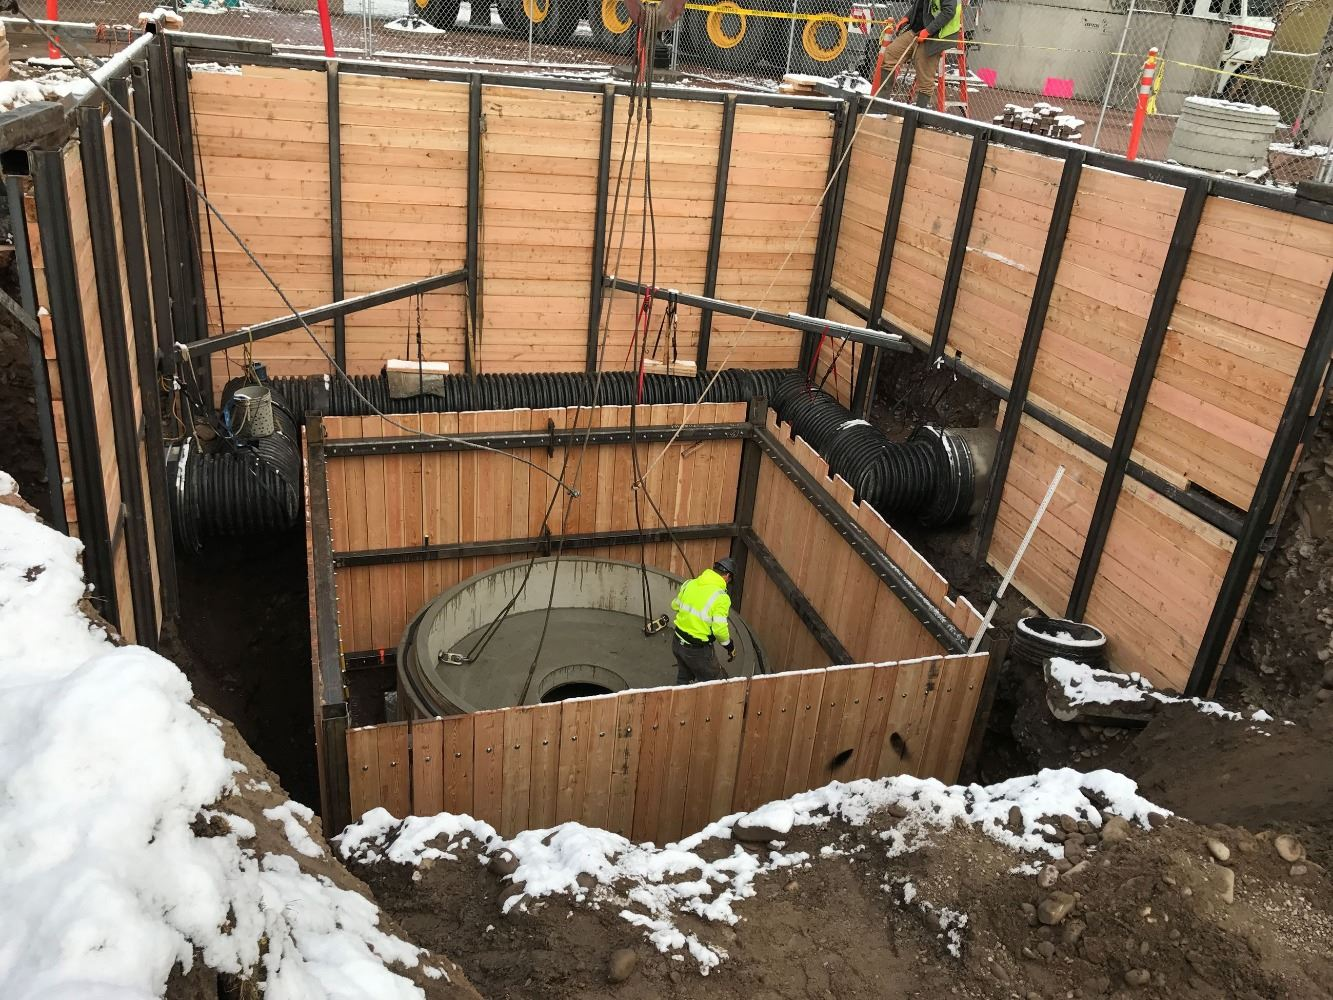 Missoula's Caras Park, showing a construction crew placing the 22-foot-deep Hydrodrodynamic Separator